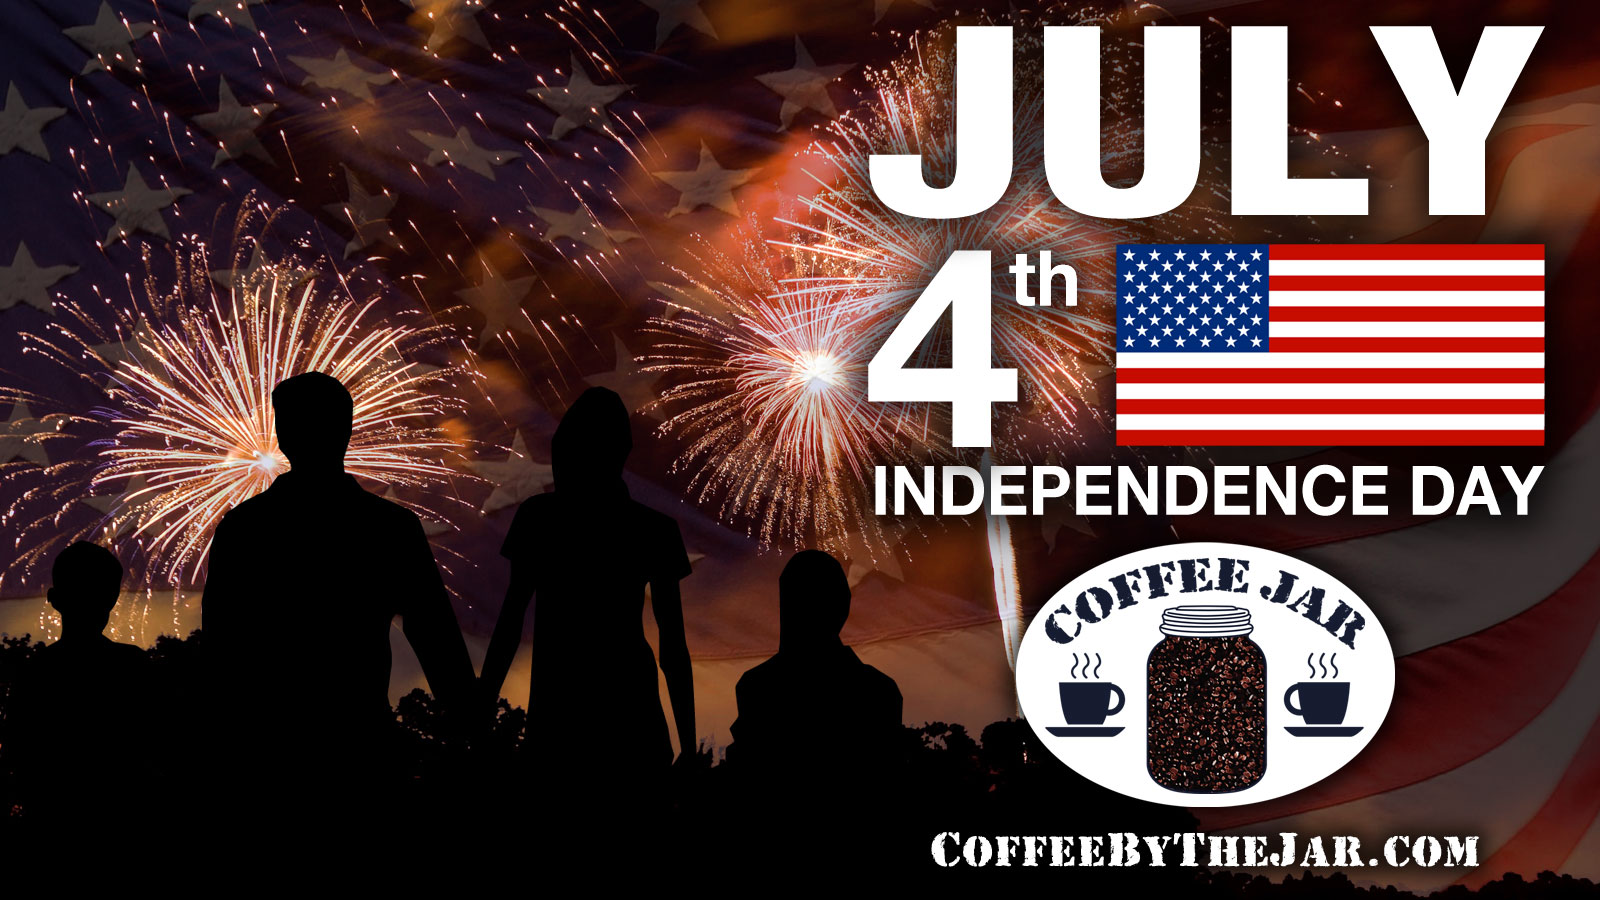 Coffee-Jar-July-4th-wallpaper02-1600x900